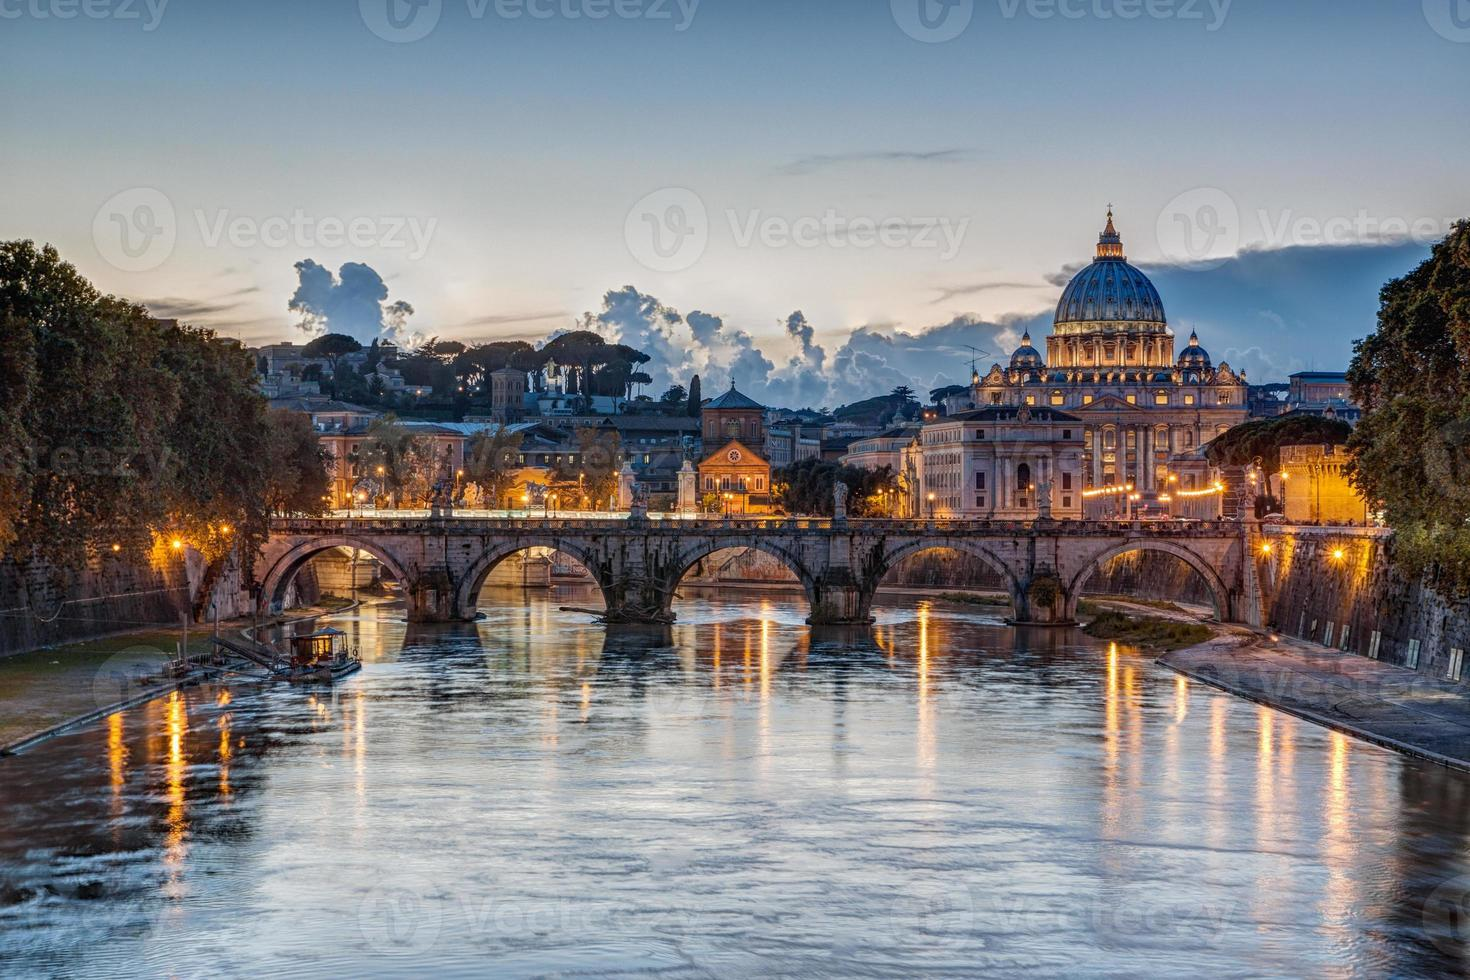 St. Peter's Basilica at dusk in Rome, Italy photo